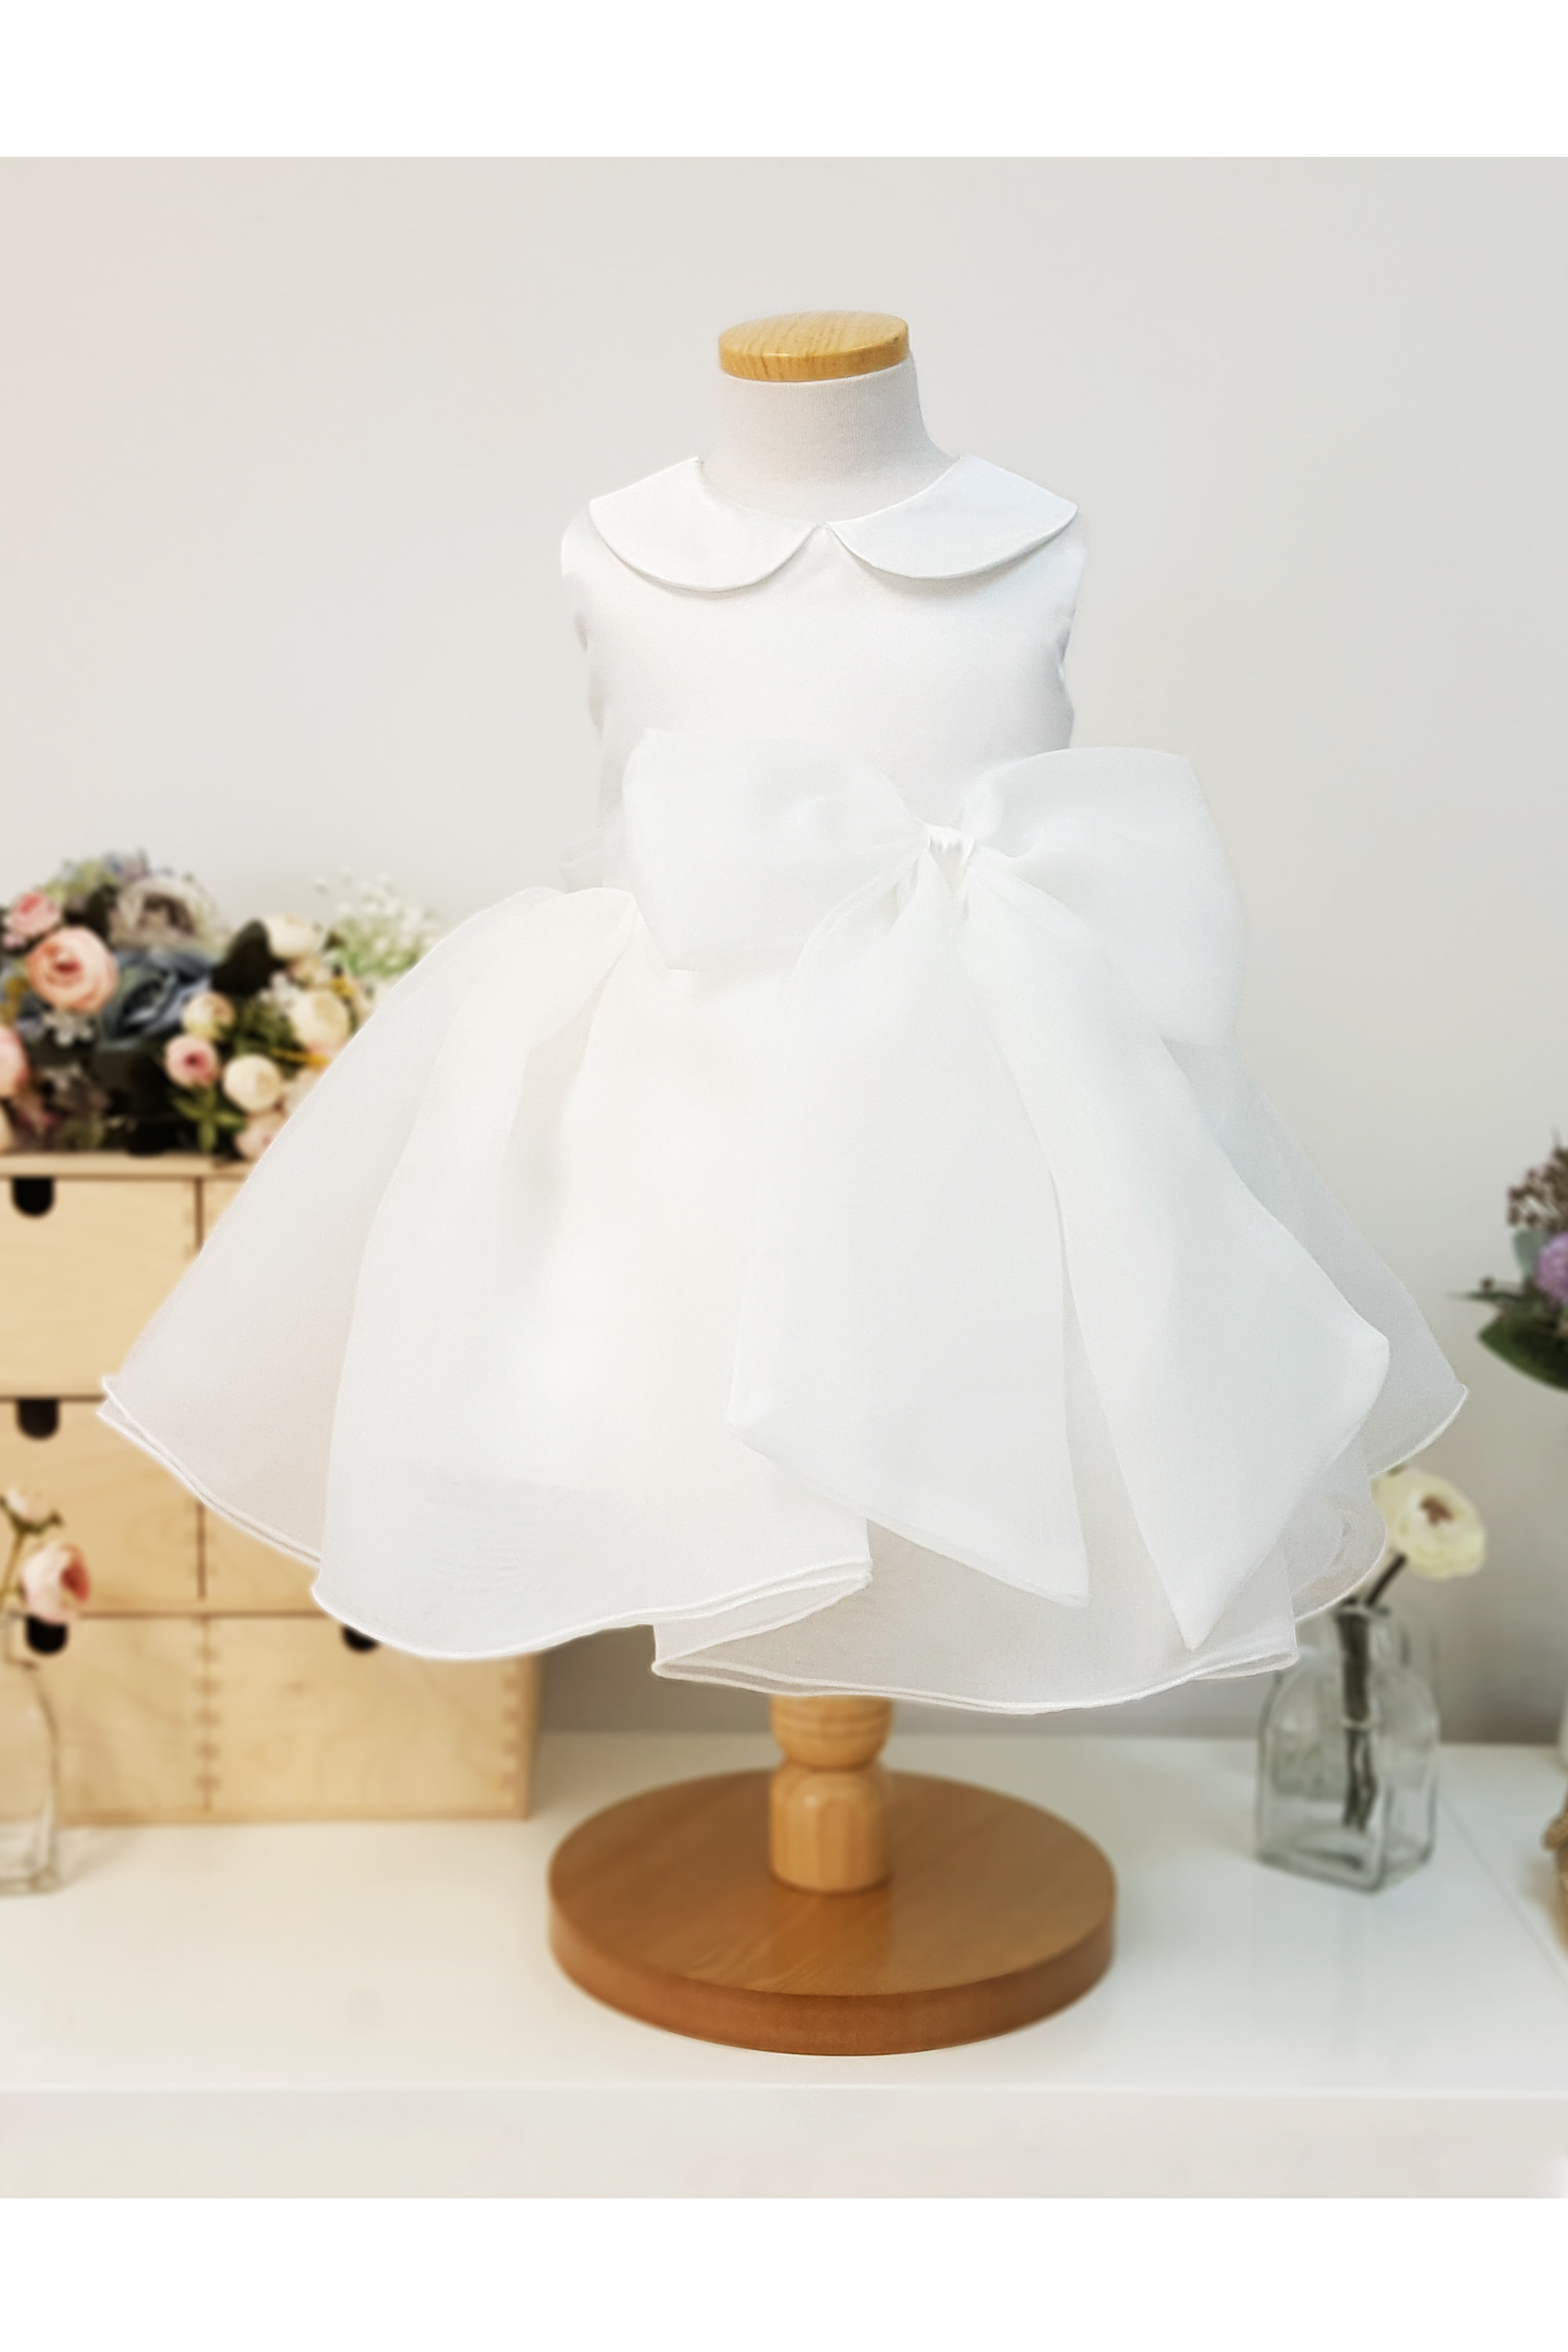 baby dress, baby collection, kids fashion, children style, haute couture, couture, flower girl, handcrafted